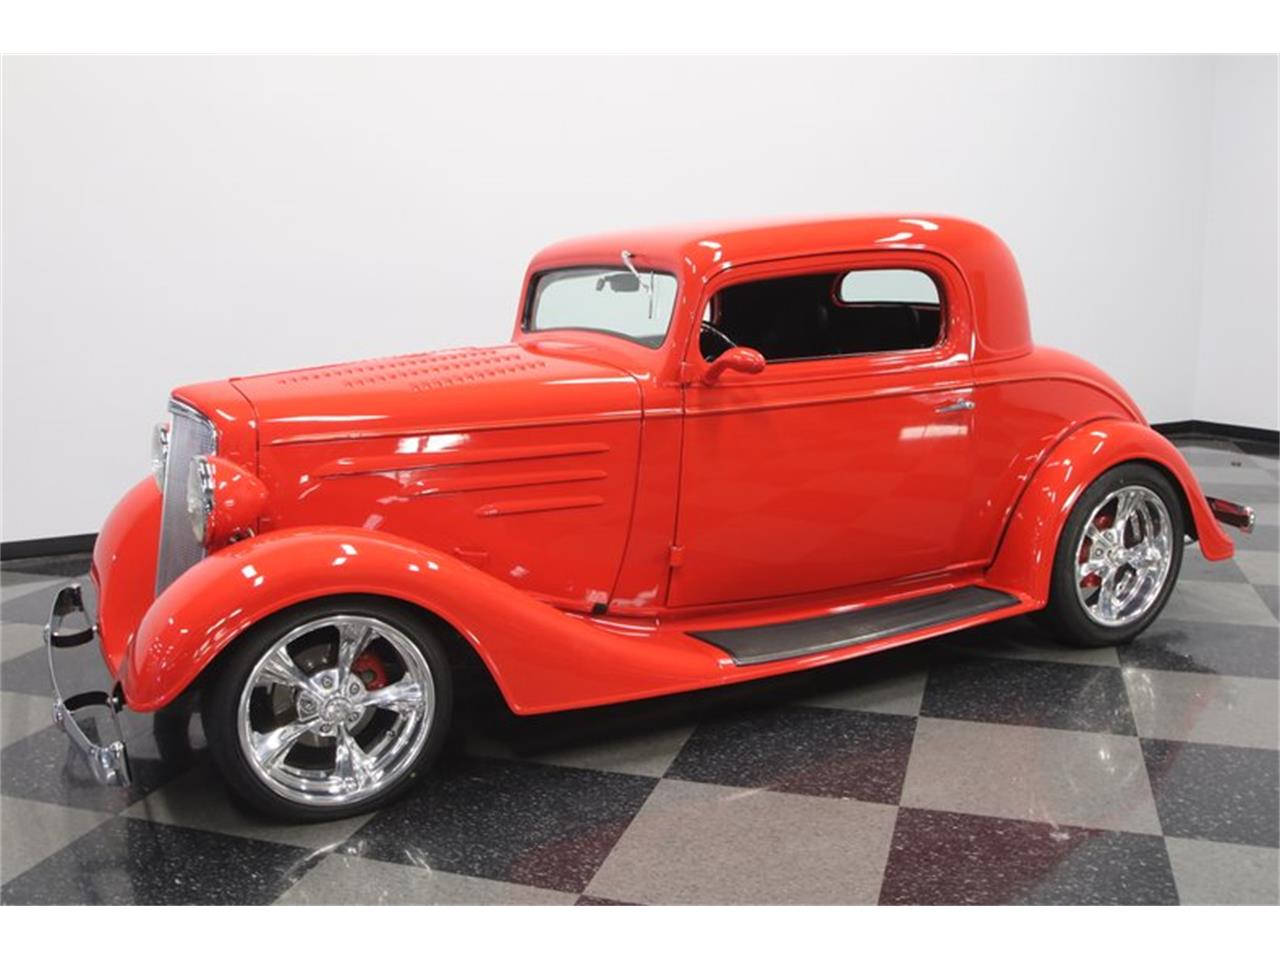 1934 Chevrolet 3-Window Coupe for sale in Lutz, FL – photo 6